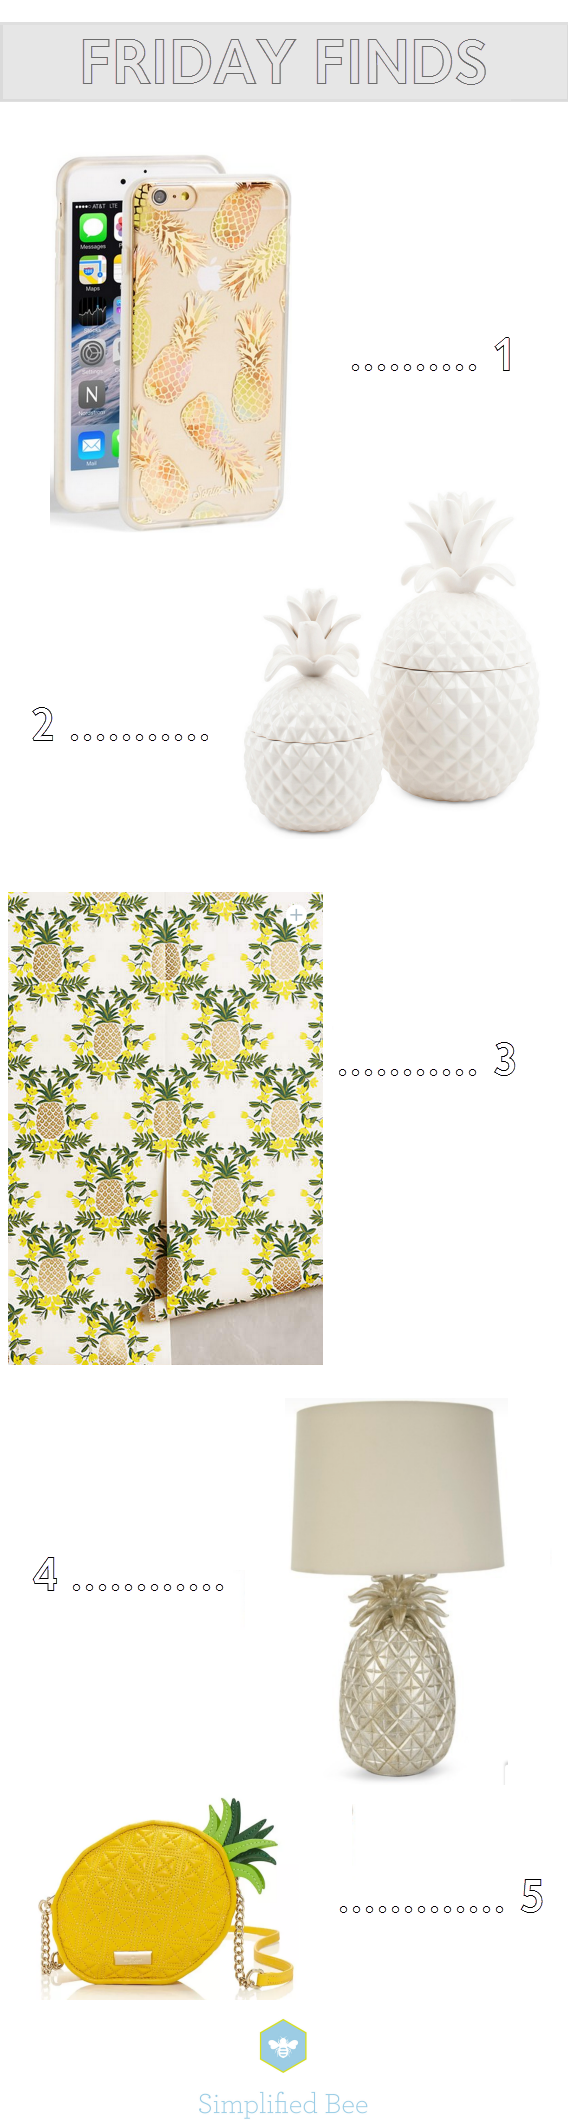 pineapple decor // friday finds// simplifiedbee.com